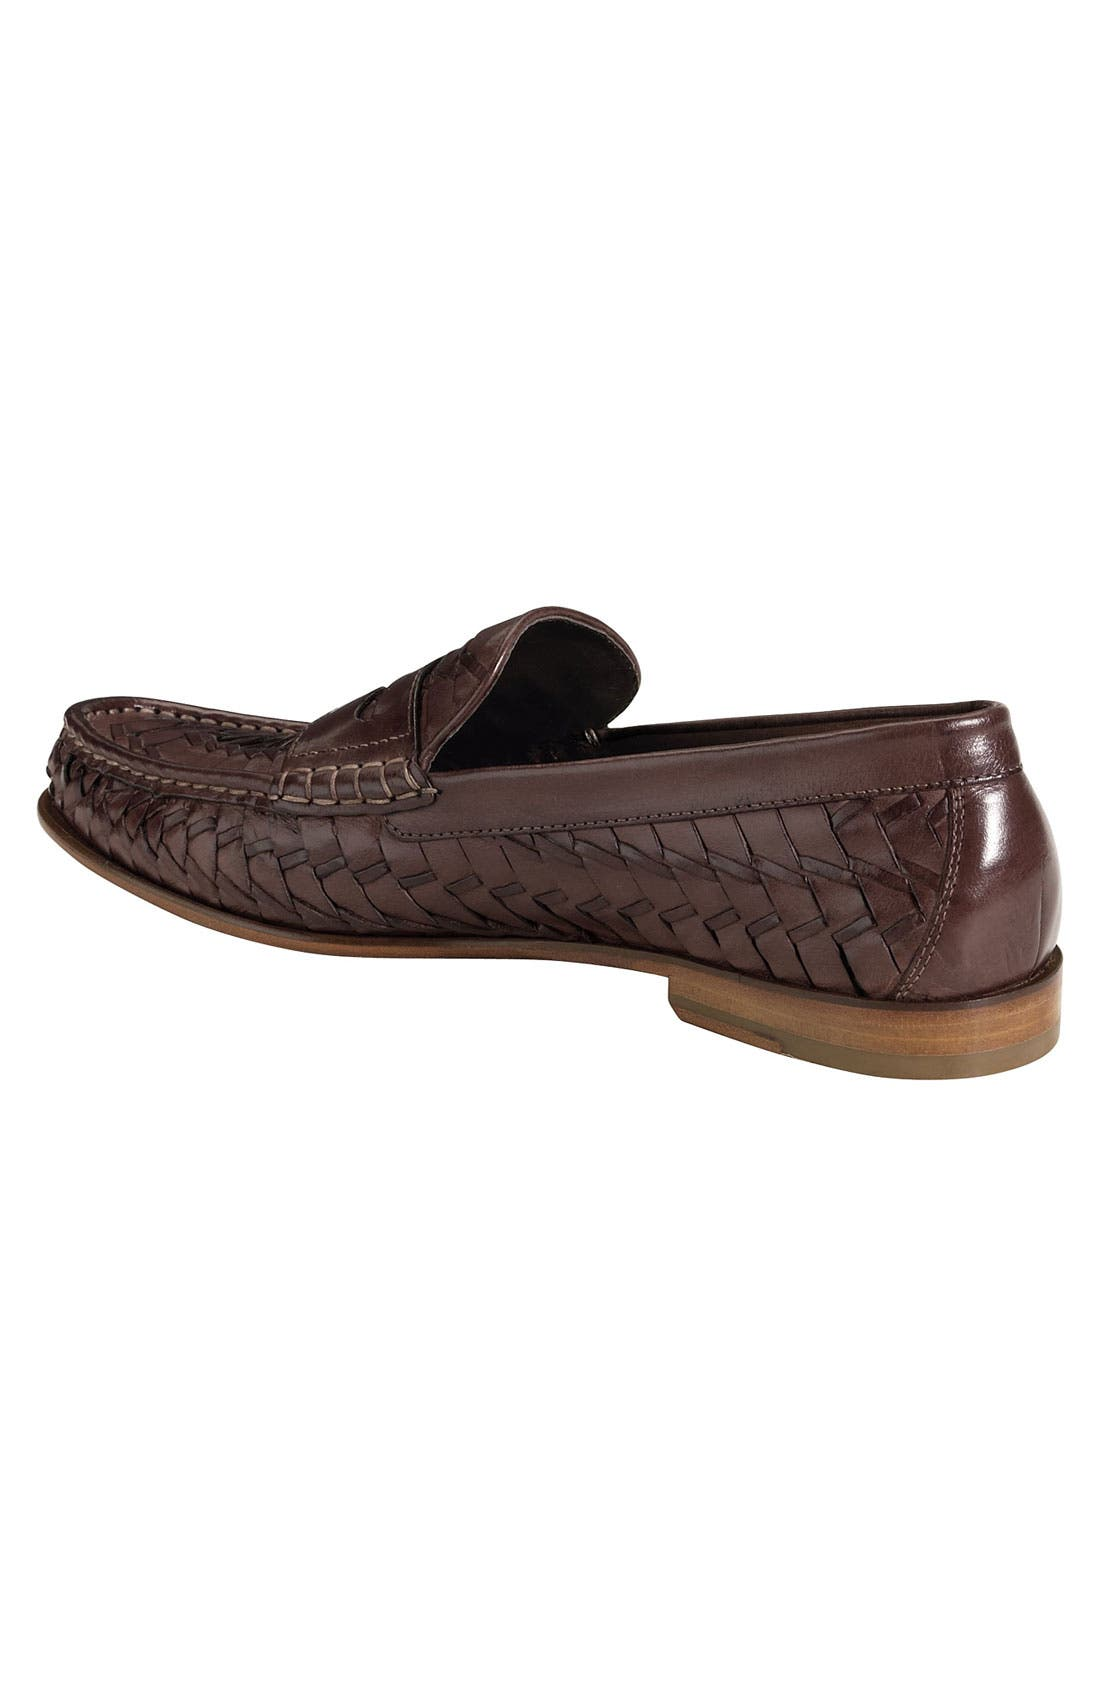 Alternate Image 2  - Cole Haan 'Air Tremont' Penny Loafer